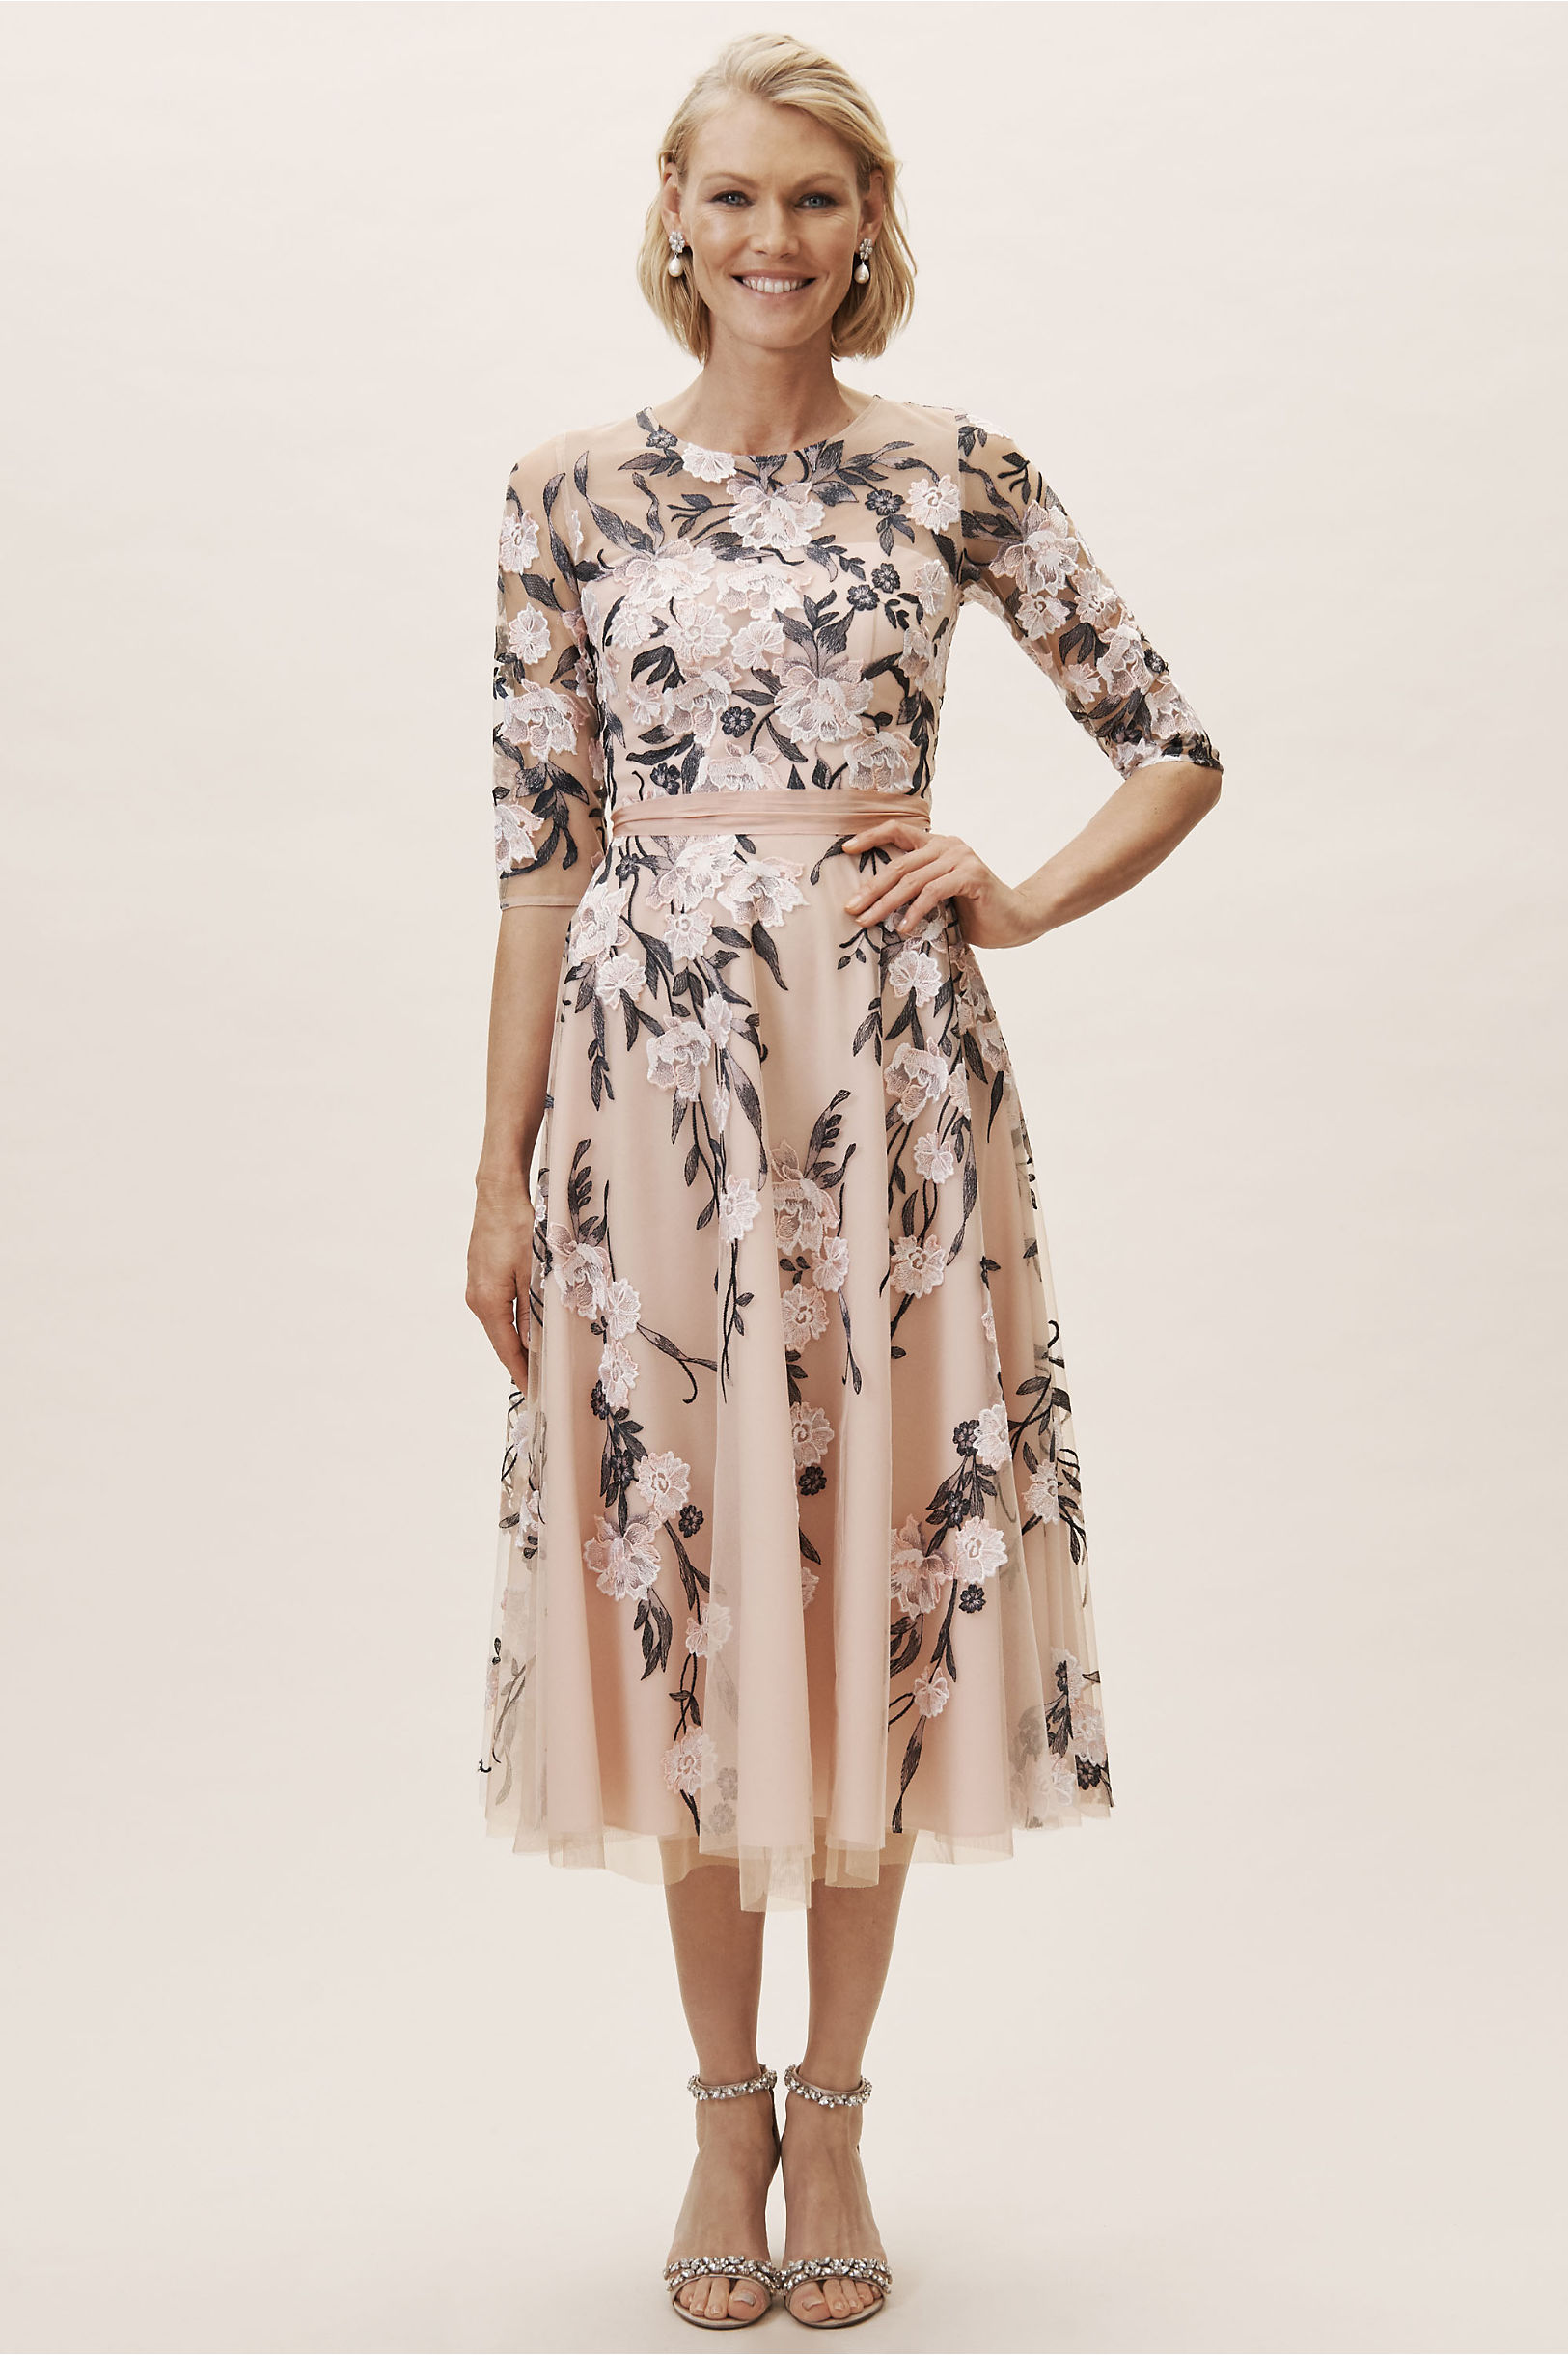 1950s Cocktail Dresses, Party Dresses BHLDN Linden Dress $280.00 AT vintagedancer.com